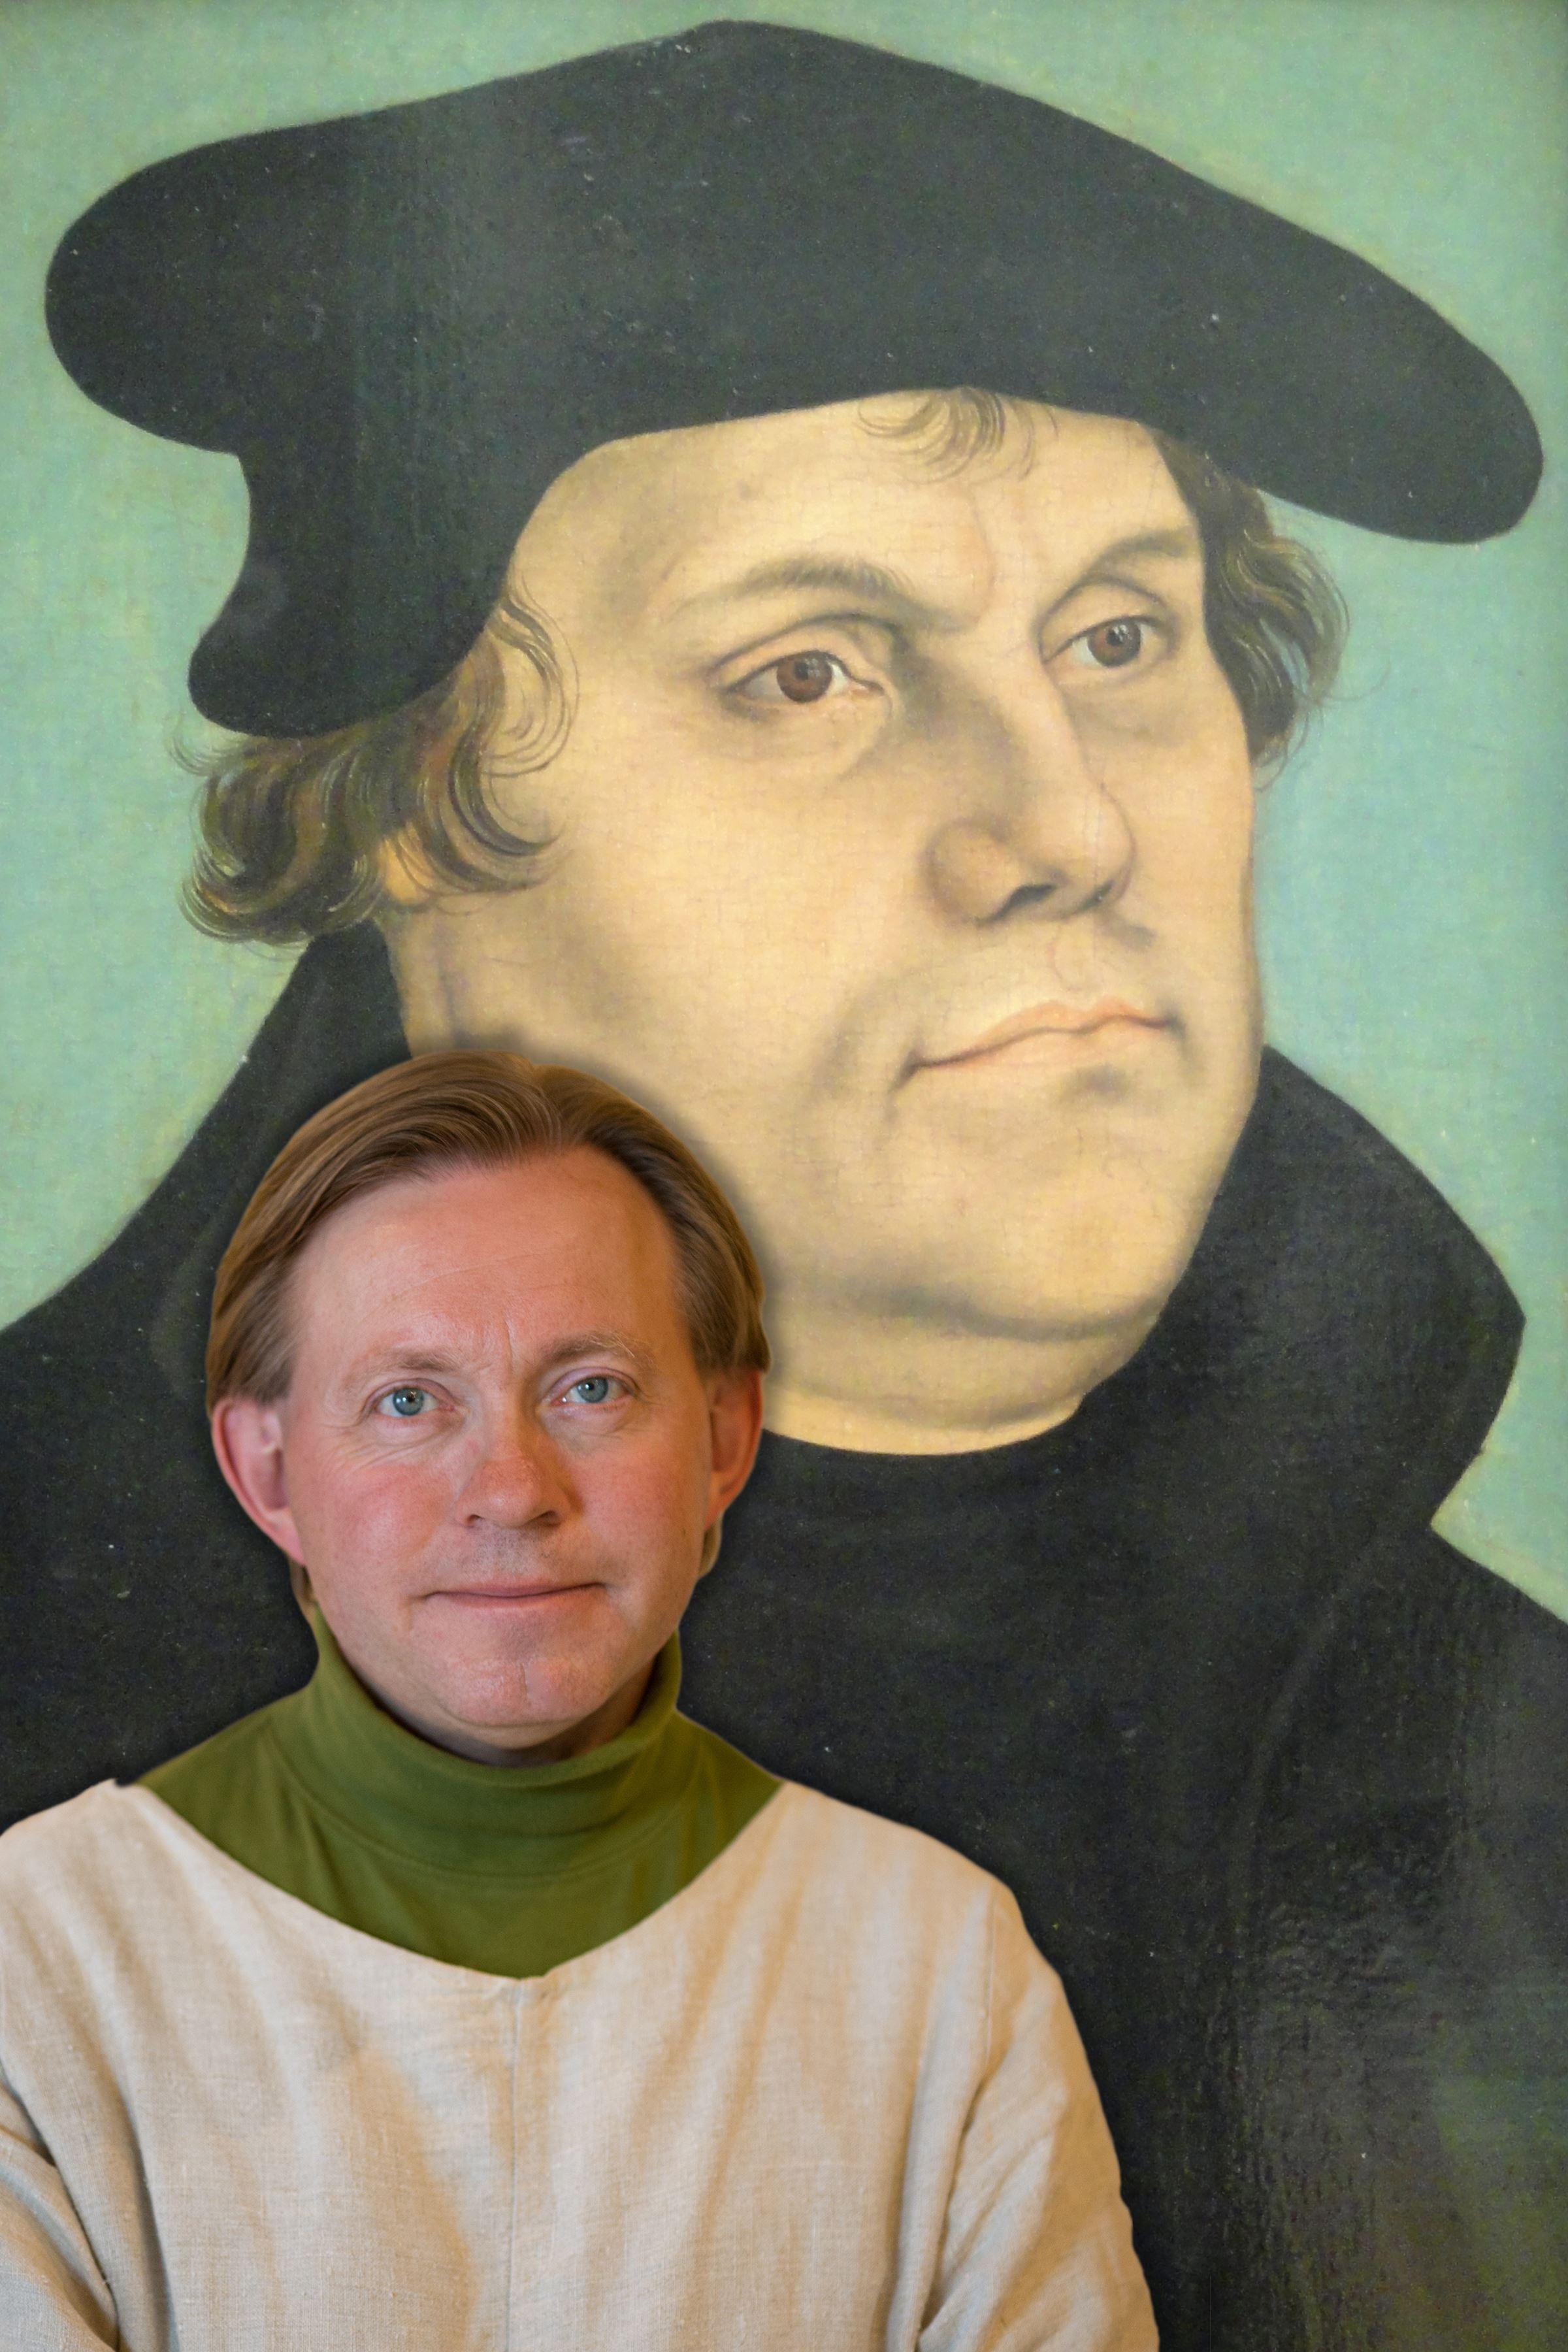 Martin Luther, who was he?